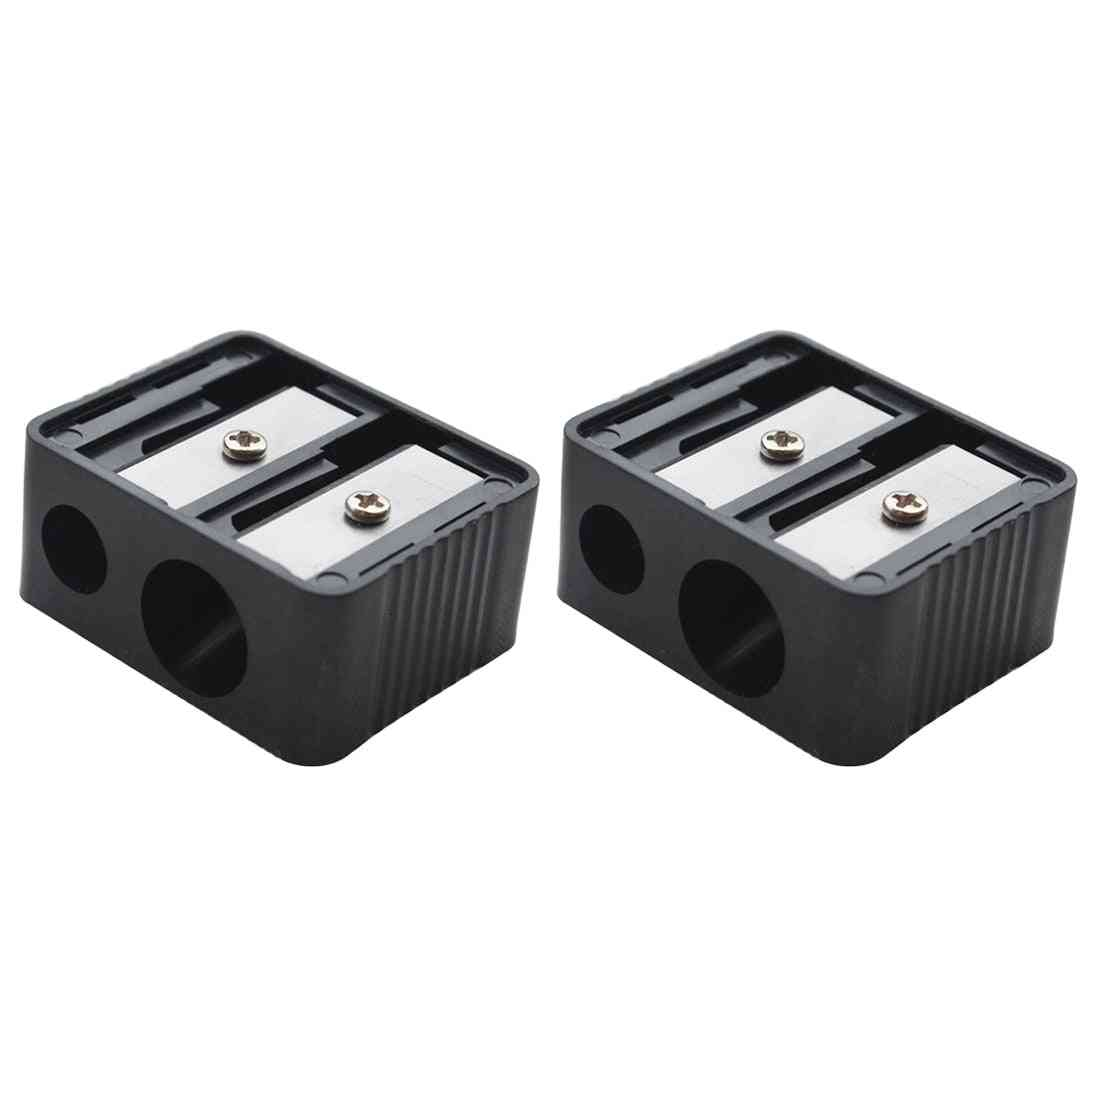 Double Holes Precision Cosmetic Pencil Sharpener For Eyebrow Liner Eyeliner Pencil